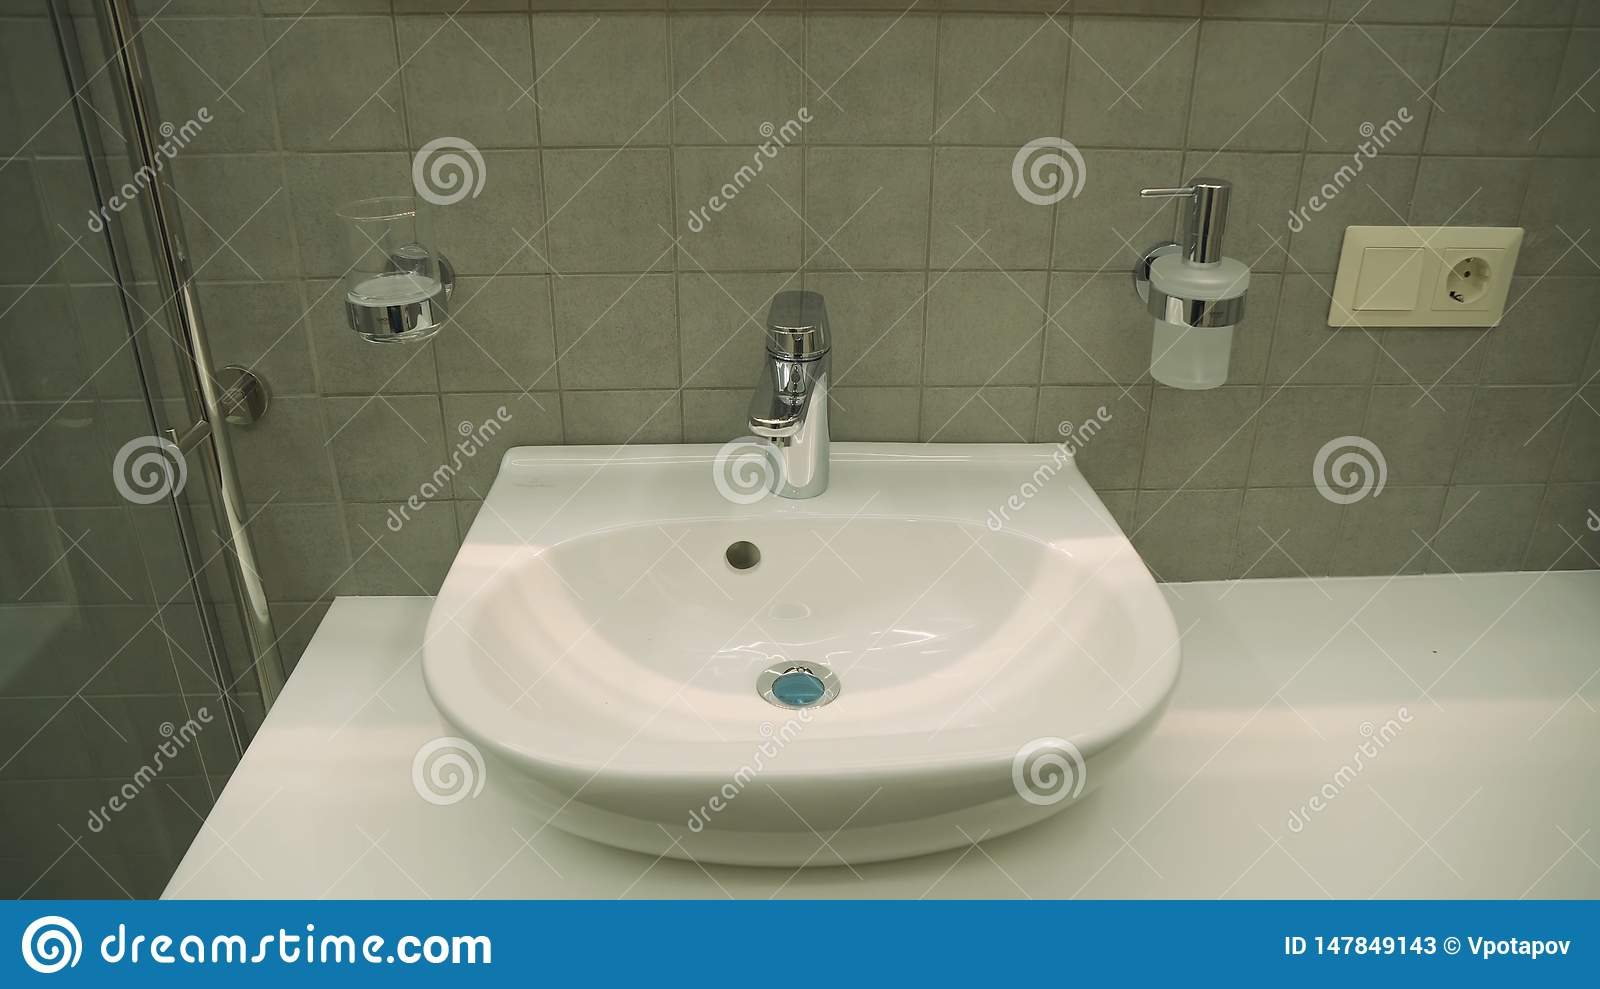 Ceramic washbasin with hot and cold faucet in luxury hotel bathroom.